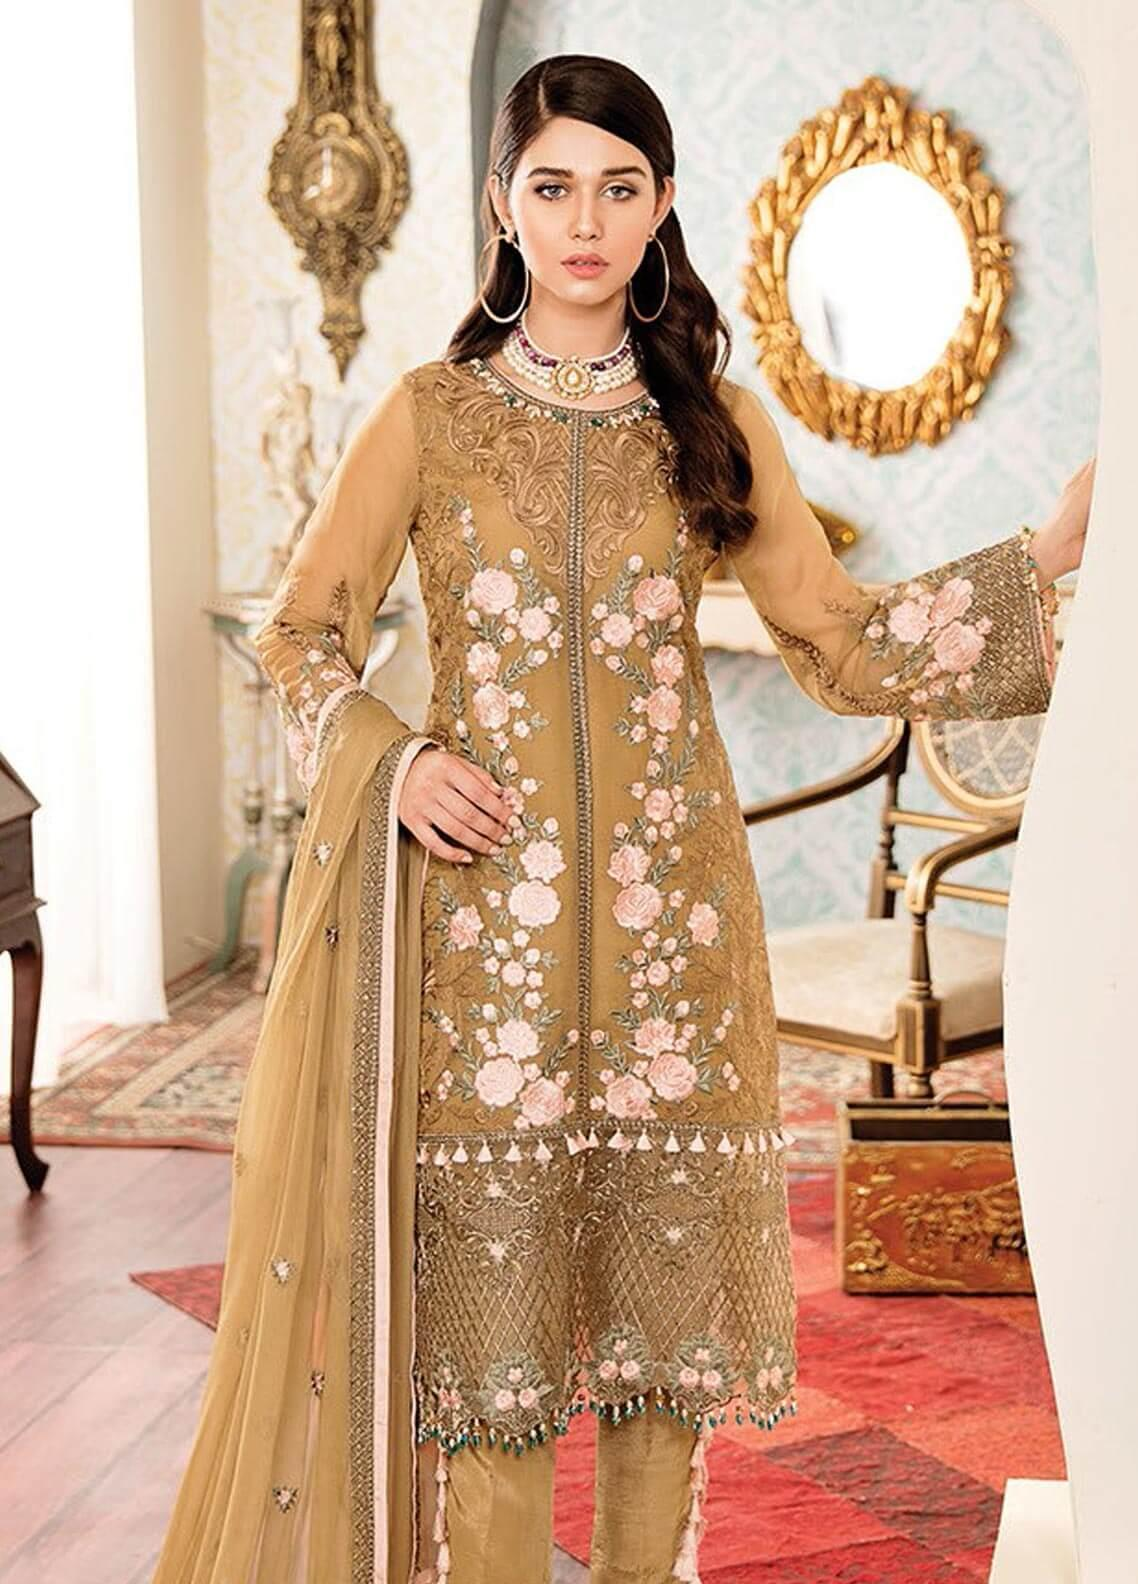 b4129aab47 Kuch Khas By Flossie Embroidered Chiffon Unstitched 3 Piece Suit FKK19-C4  06 BELLISIMO -